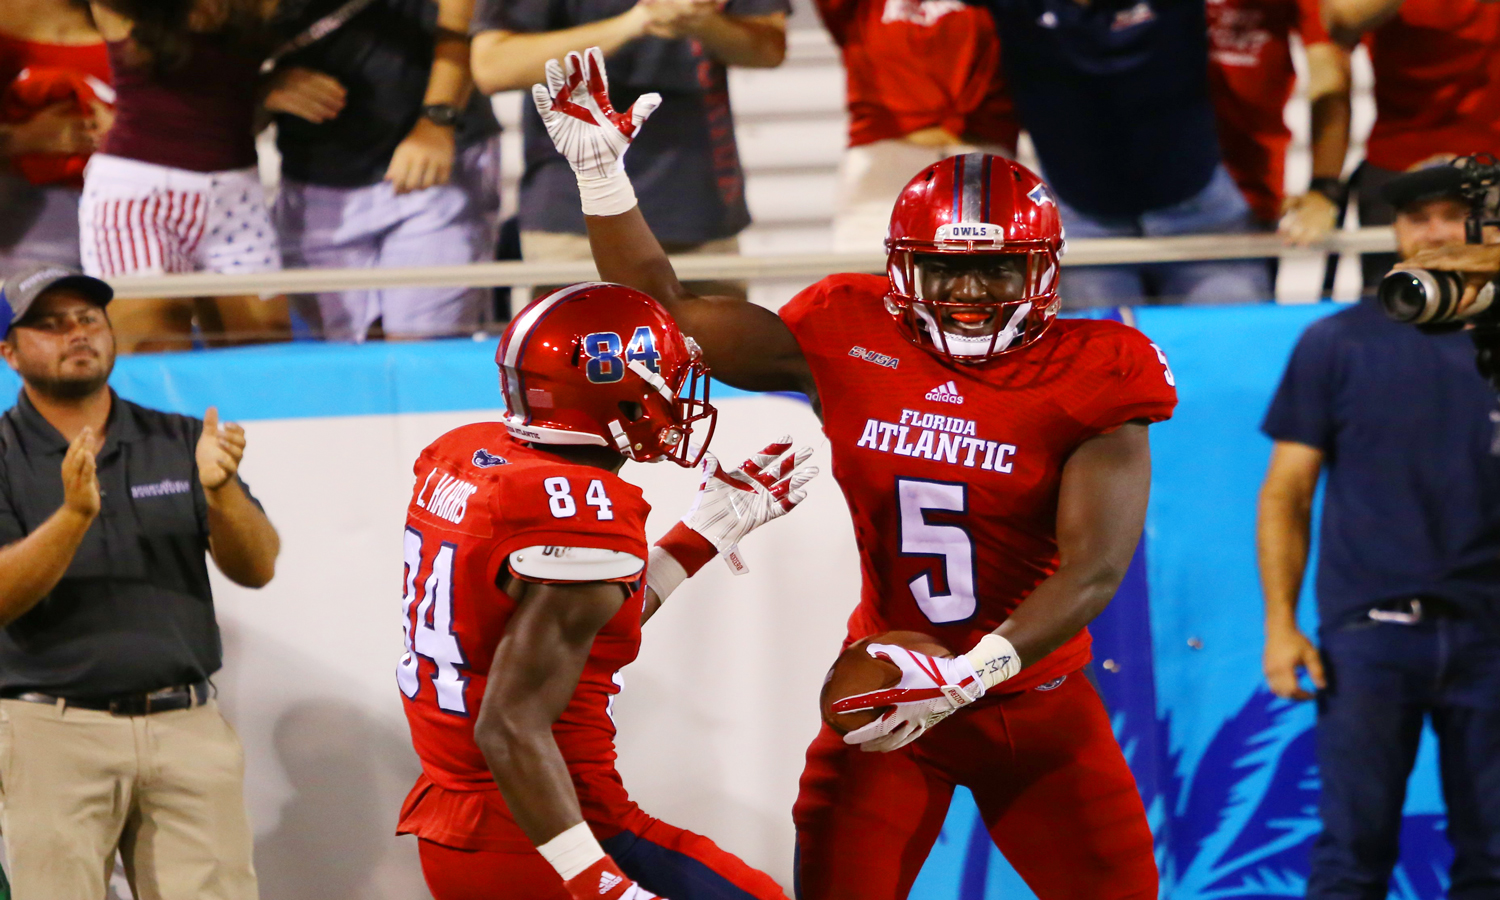 FAU sophomore running back Devin Singletary (5) celebrates with redshirt sophomore wide receiver LaDante Harris after scoring a touchdown for the Owls during the third quarter versus Marshall. Alexander Rodriguez | Photo Editor